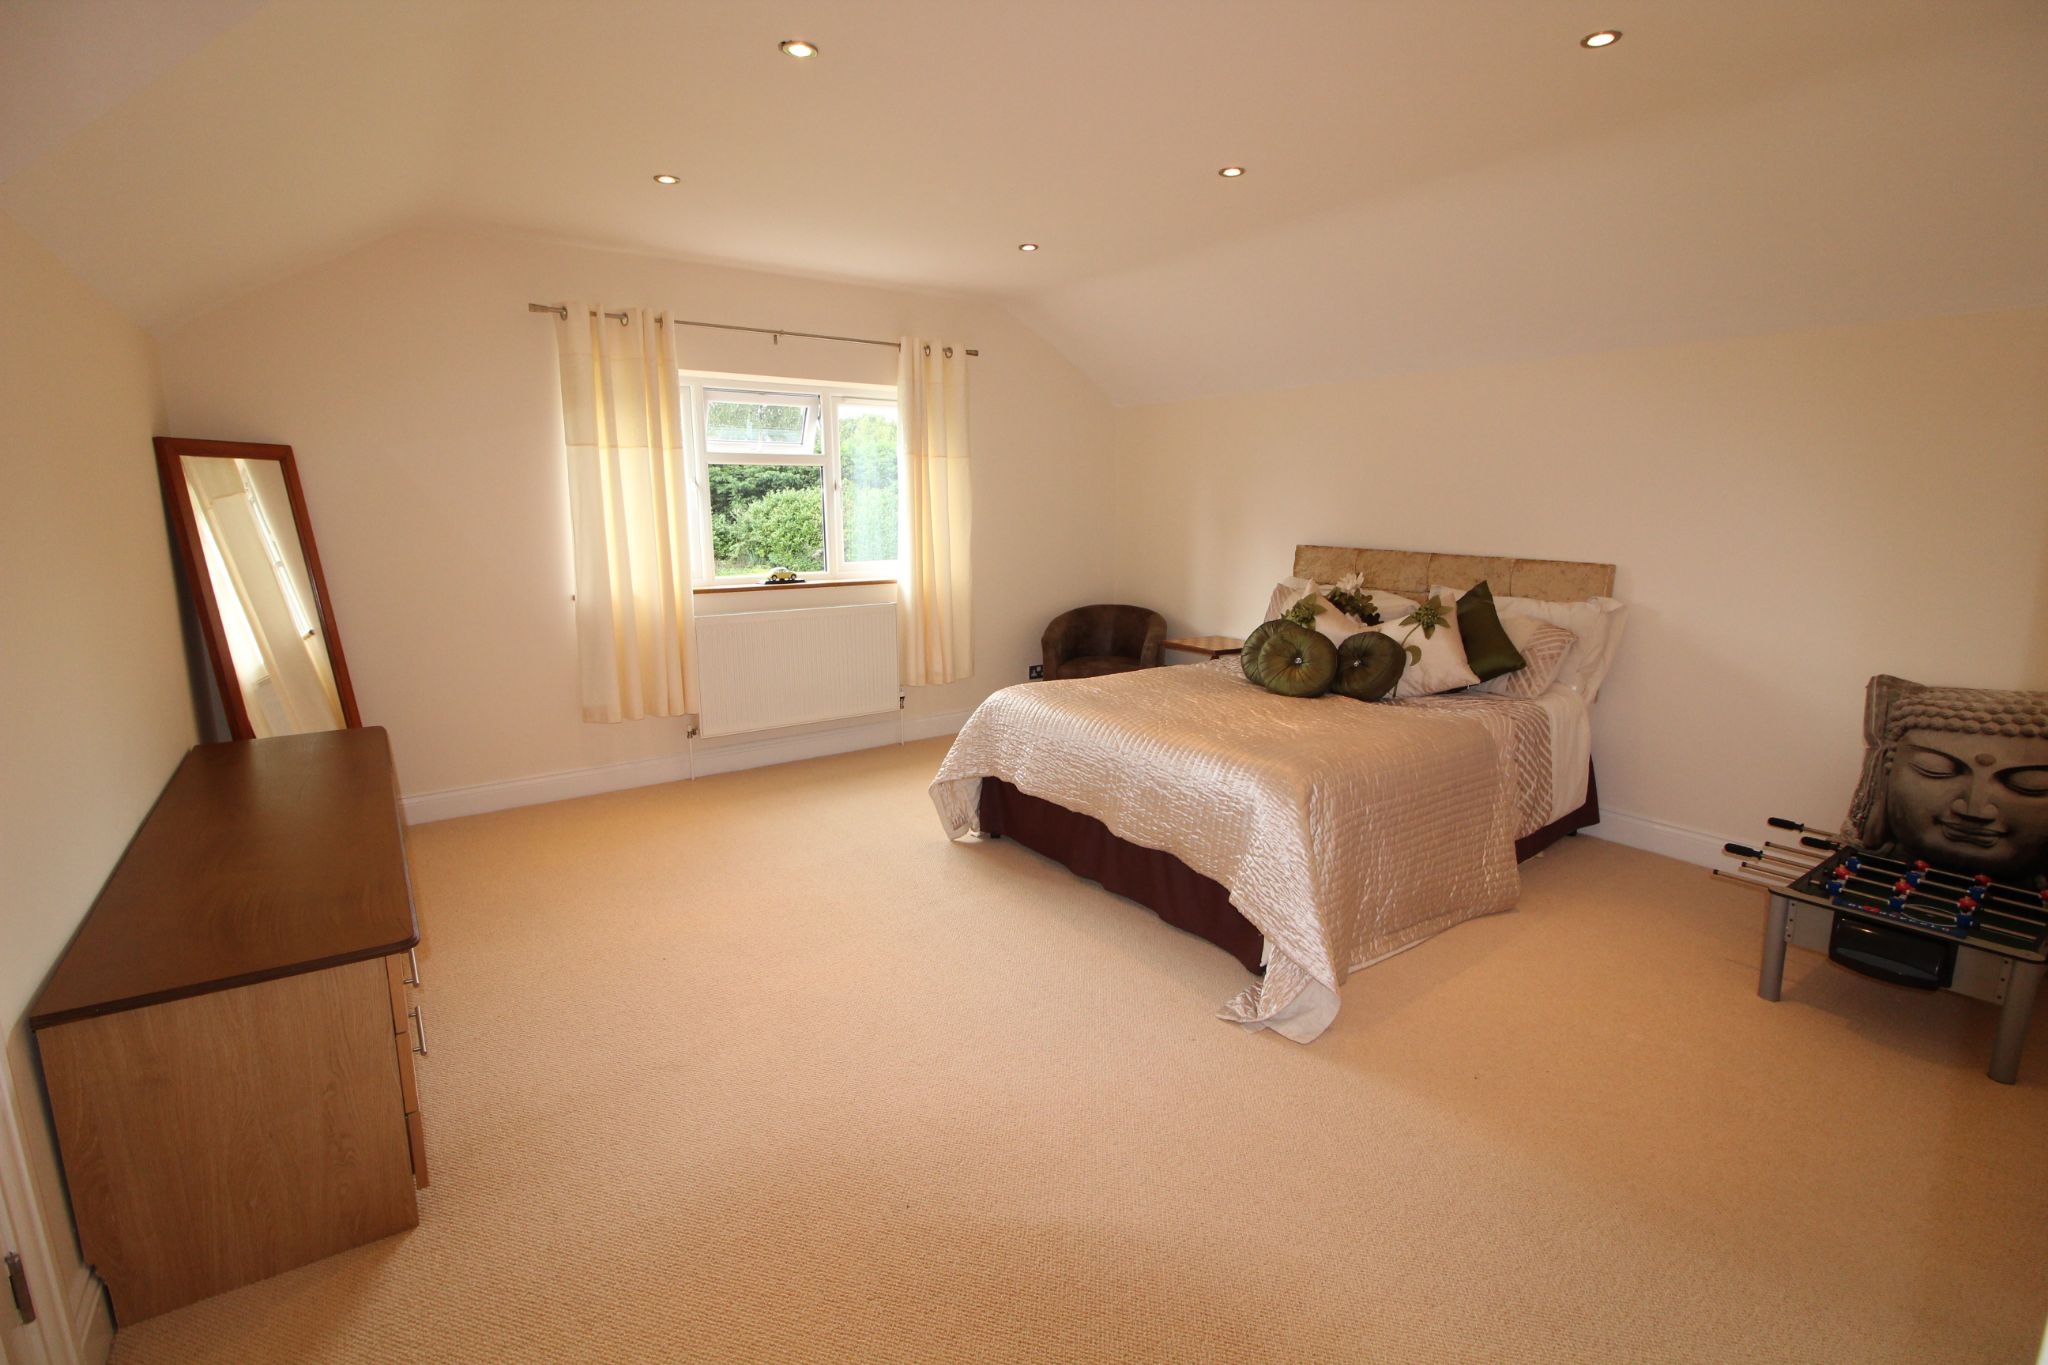 5 bedroom detached house SSTC in North Mymms - Photograph 20